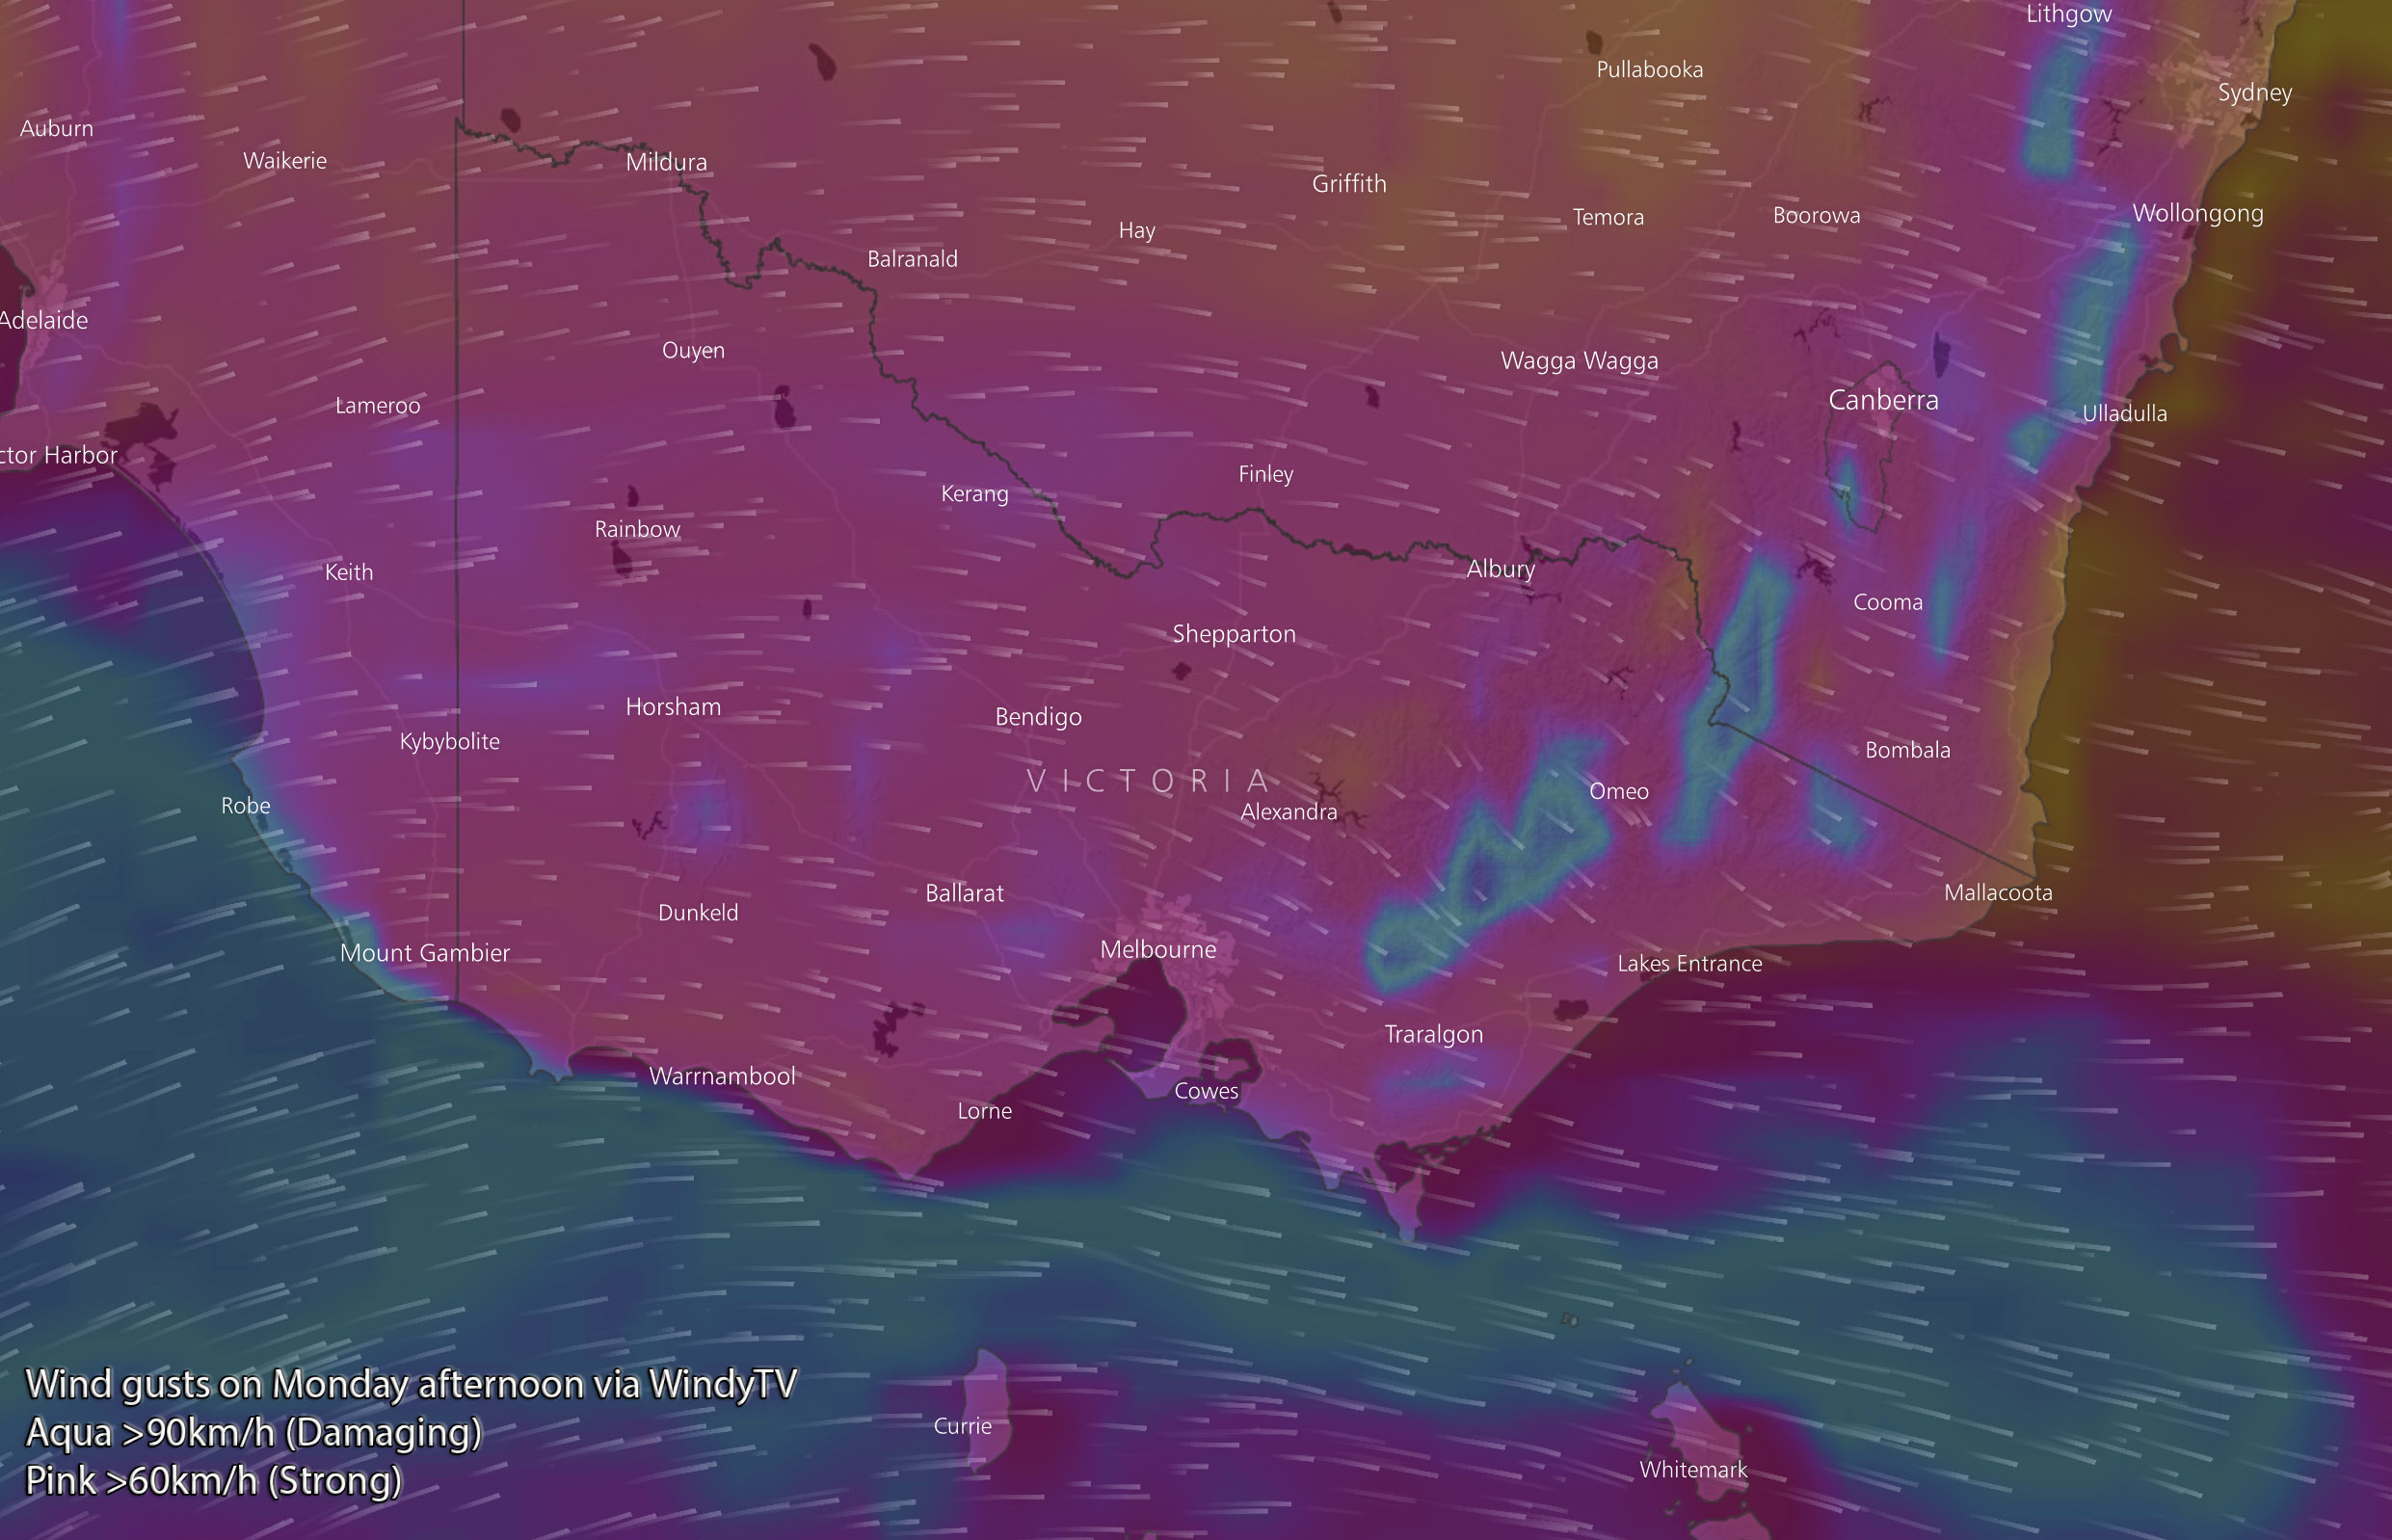 Forecast wind gusts on Monday afternoon via WindyTV. Aqua is over 90km/h, pink is over 60km/h